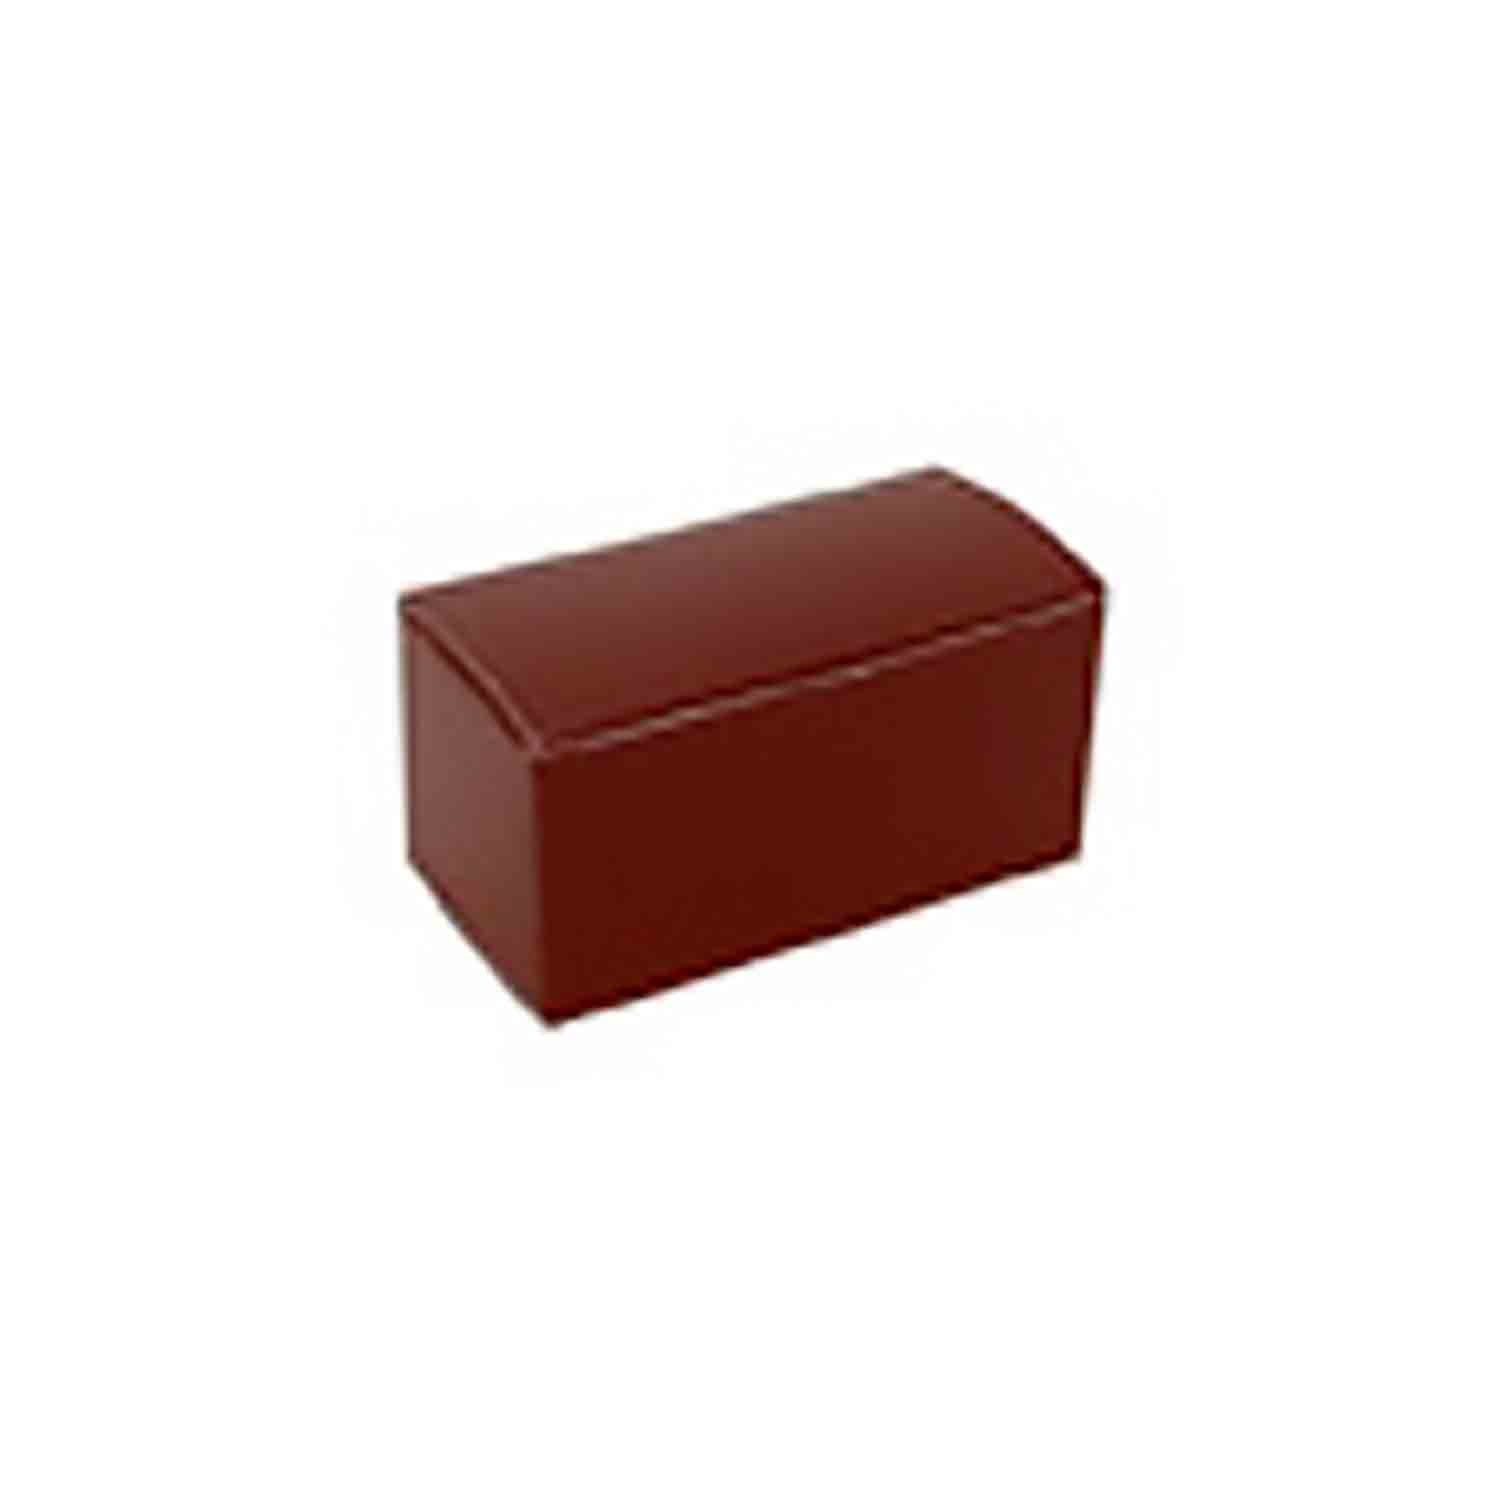 2 Pc. Brown Mini Candy Box